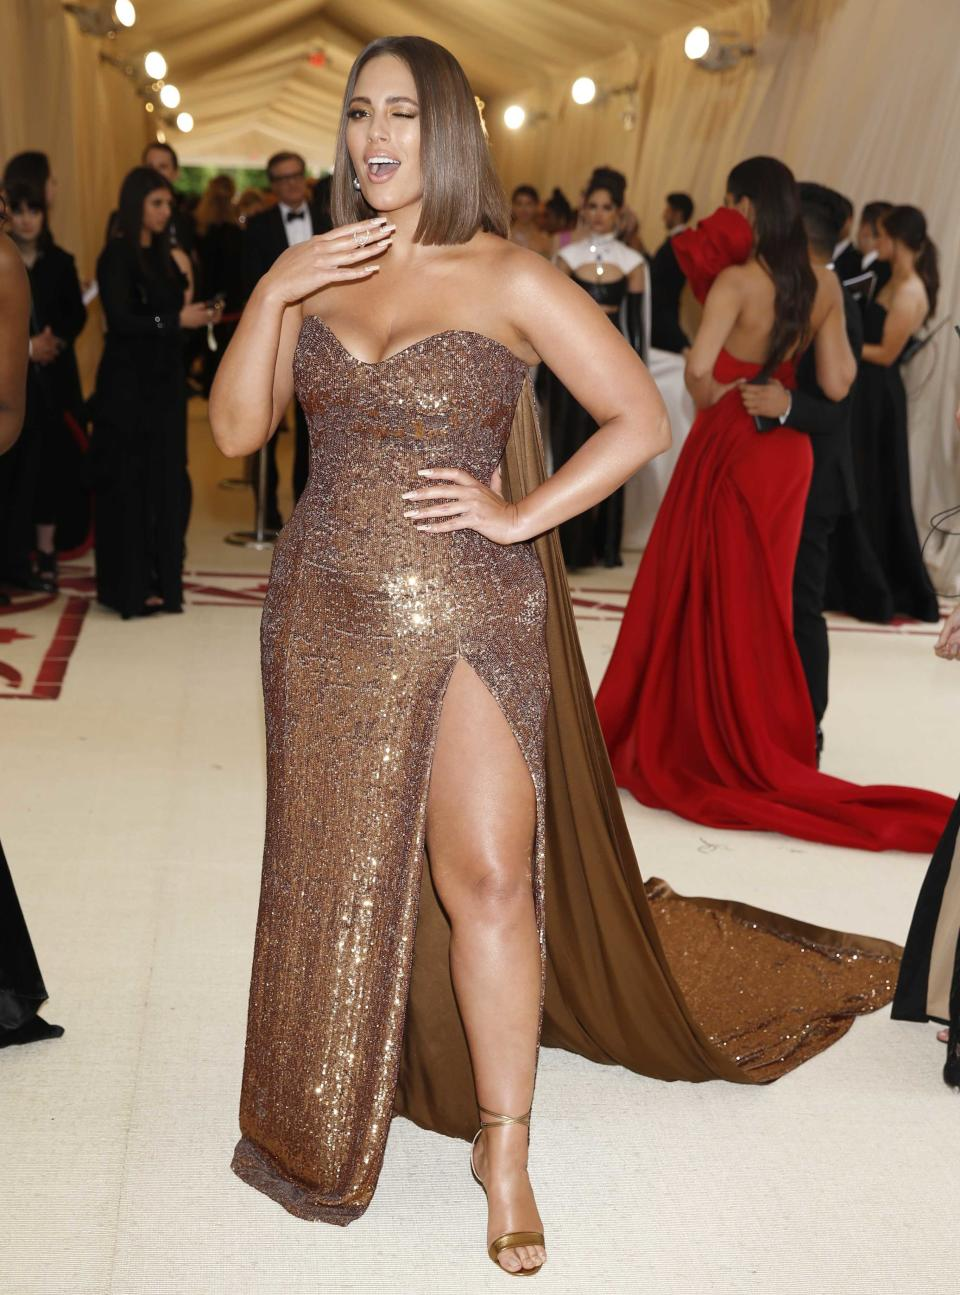 """Model Ashley Graham arrives at the Metropolitan Museum of Art Costume Institute Gala (Met Gala) to celebrate the opening of """"Heavenly Bodies: Fashion and the Catholic Imagination"""" in the Manhattan borough of New York, U.S., May 7, 2018. REUTERS/Carlo Allegri"""